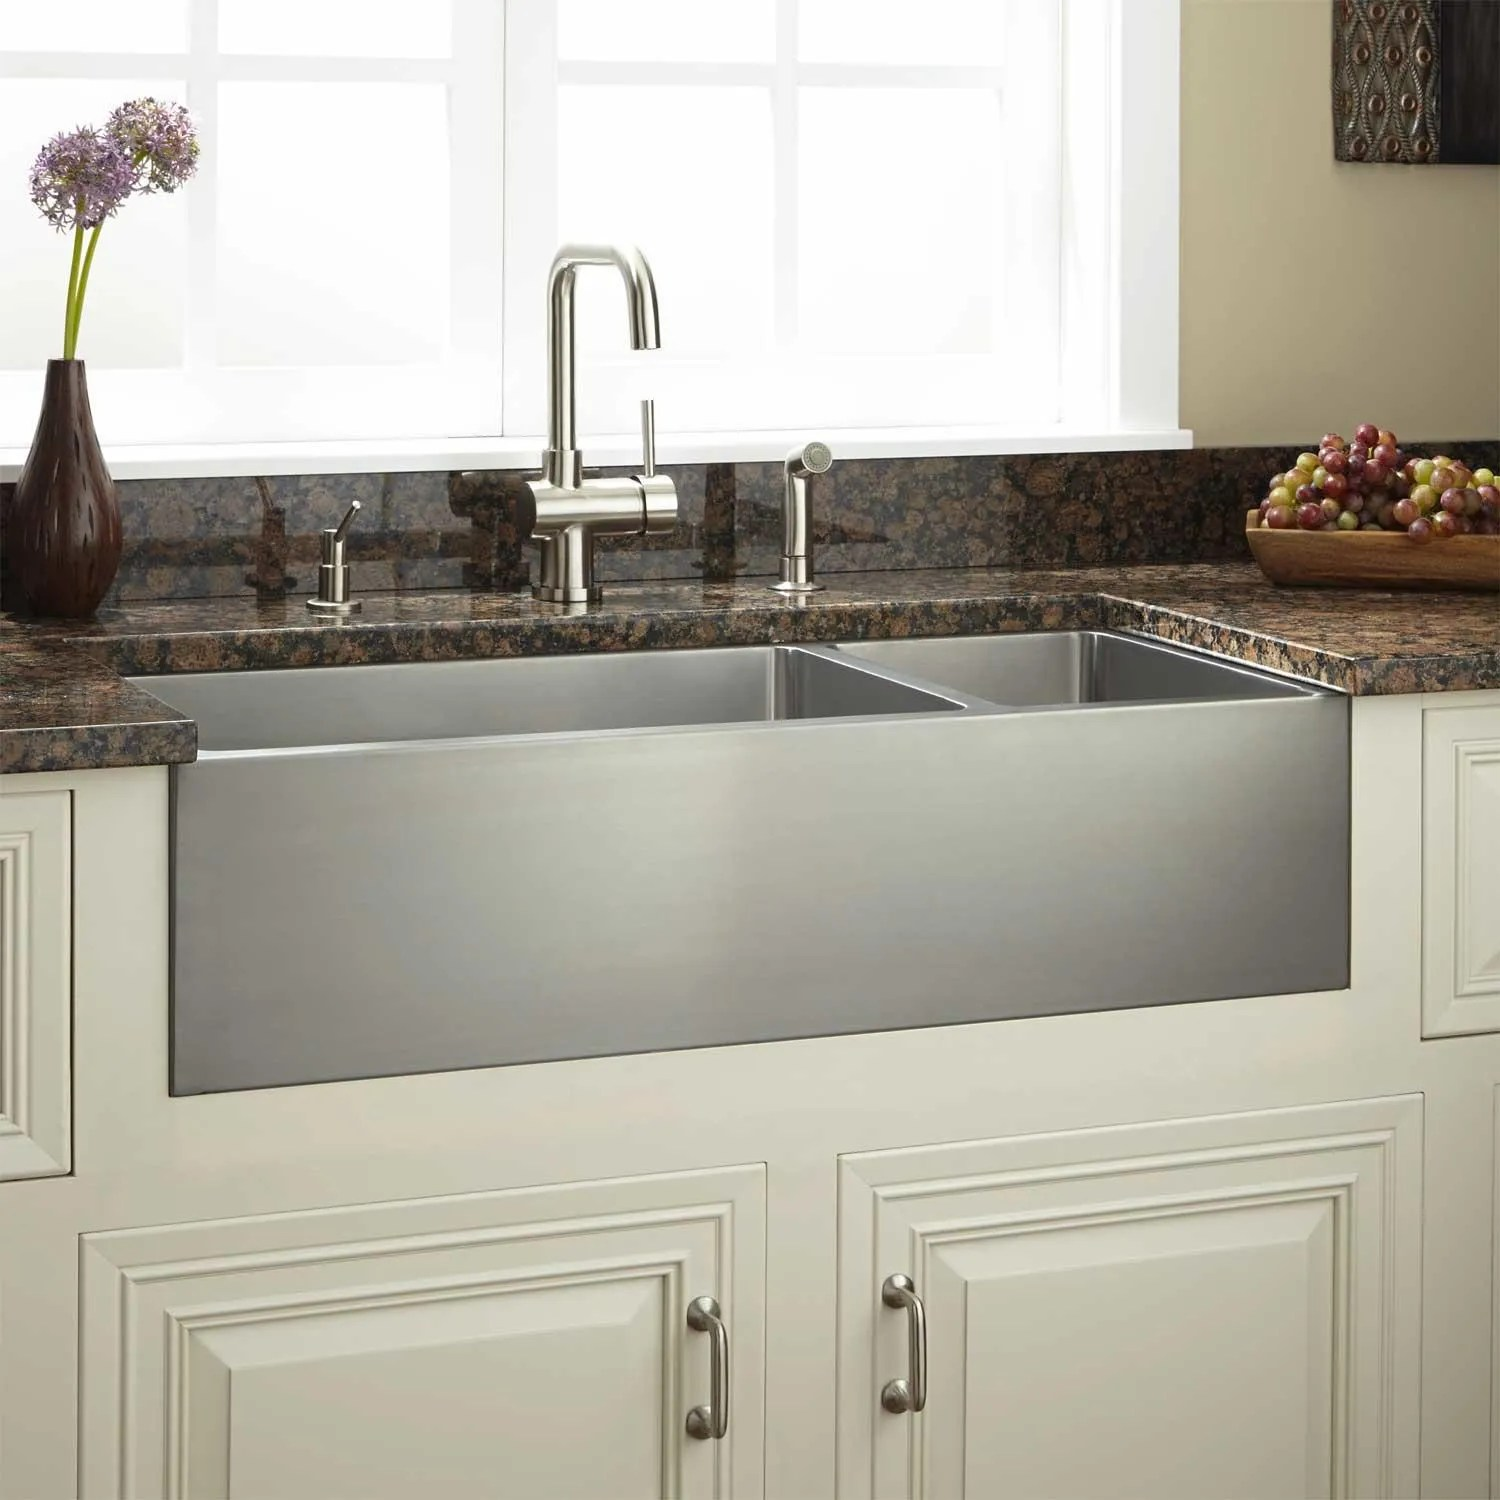 Large Stainless Steel Farmhouse Sink Signature Hardware